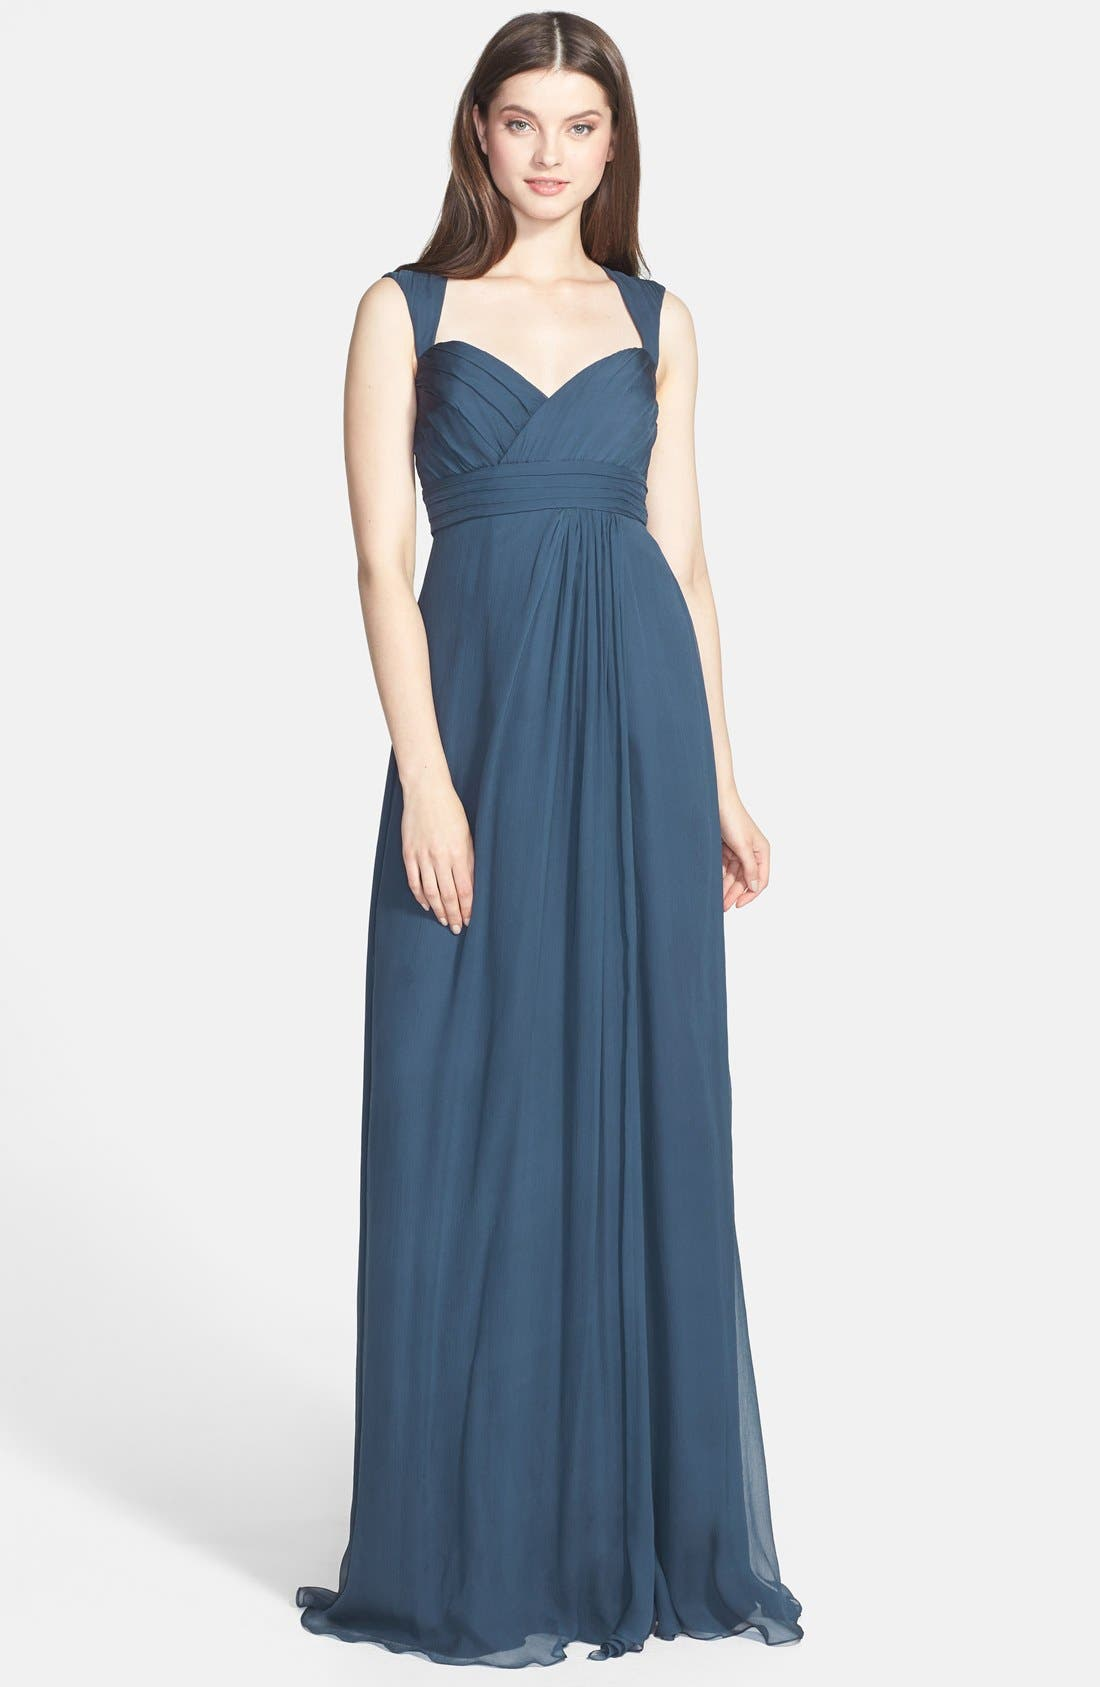 Contemporary Bridal Gowns Nordstrom Component - All Wedding Dresses ...